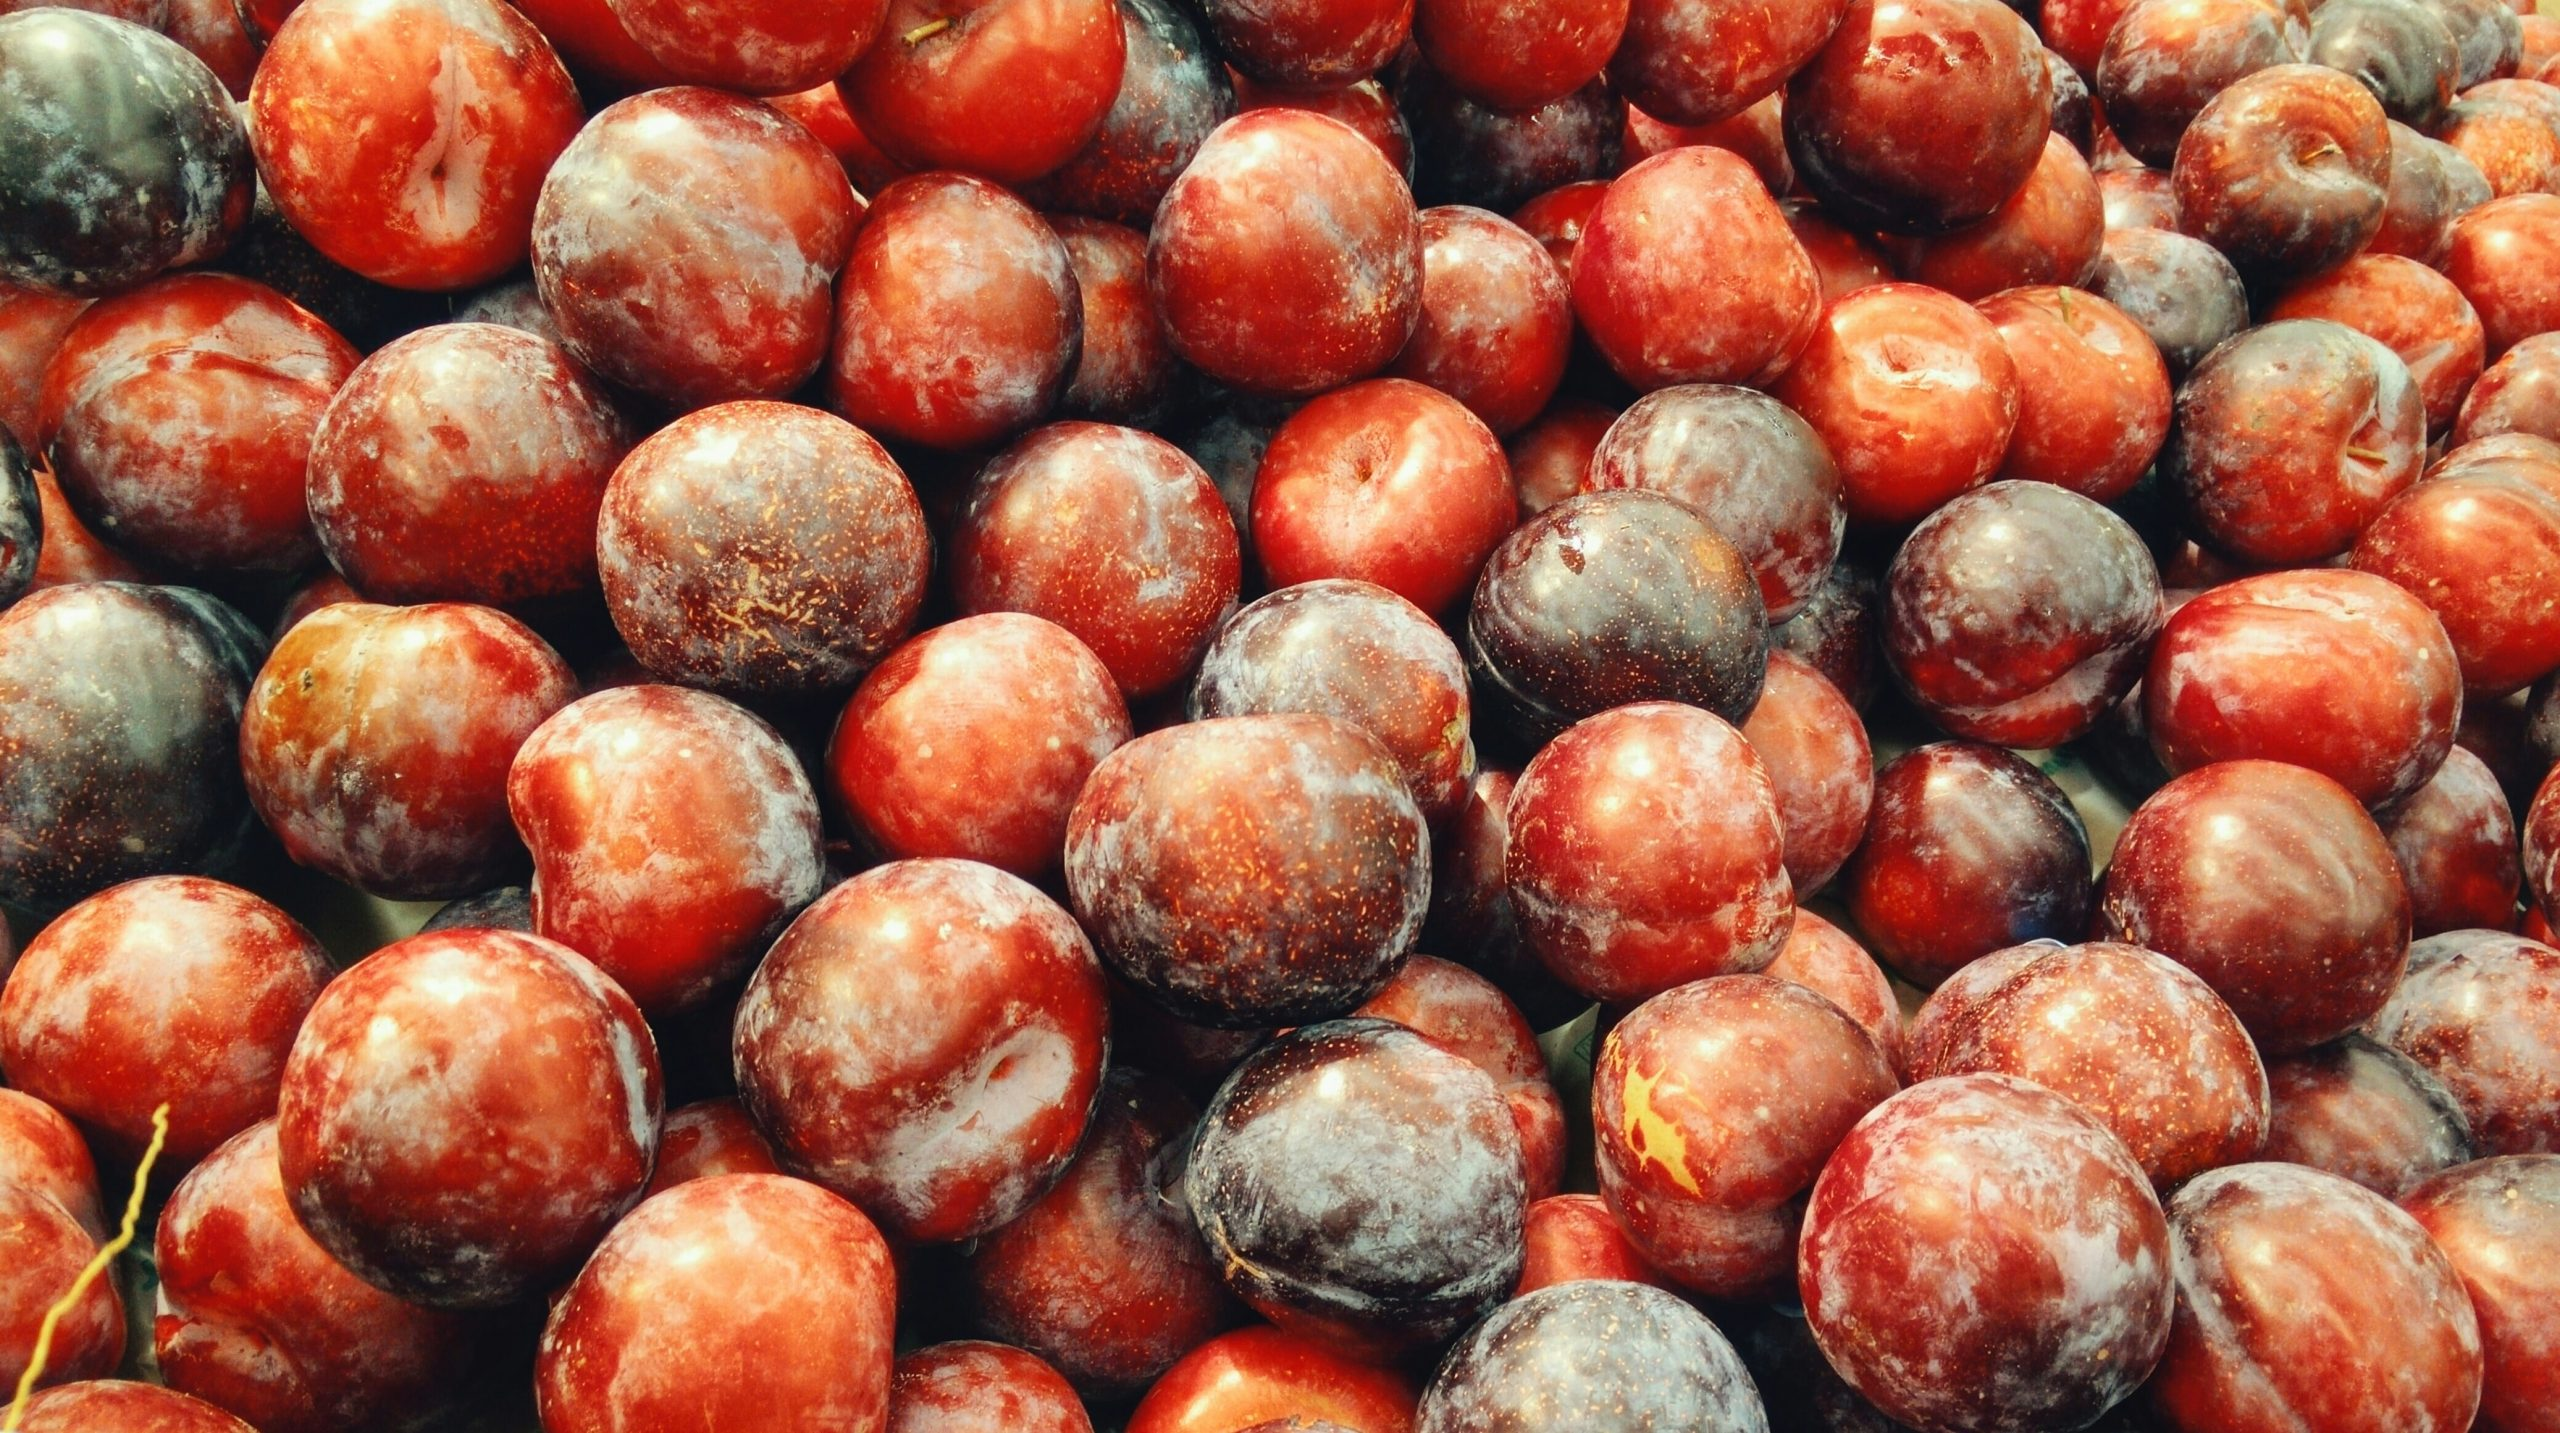 20 Foods Harmful to Dogs - stone fruits